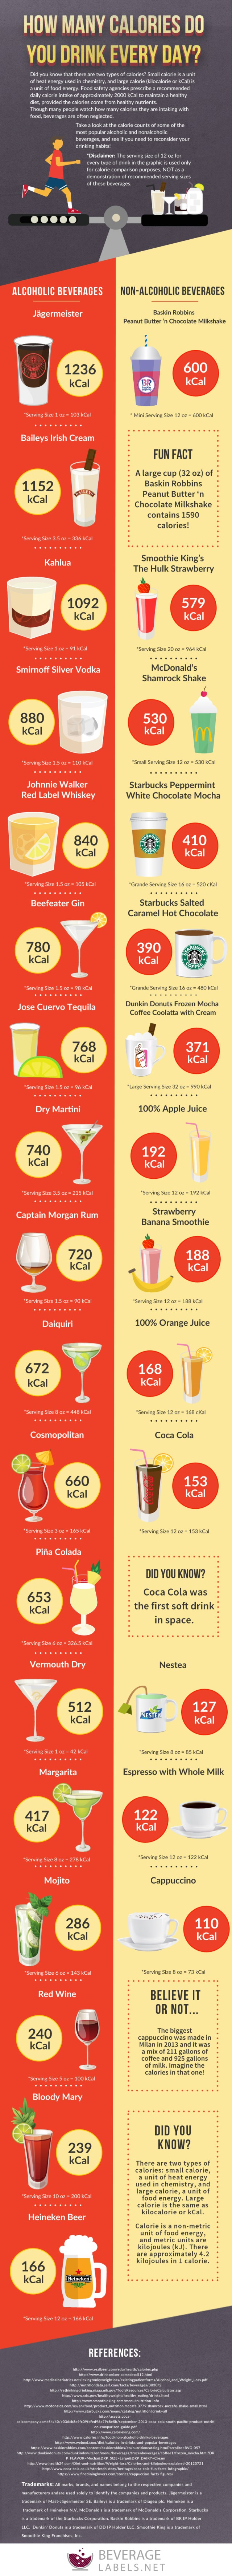 Infographic: How Many Calories Do You Drink Every Day?